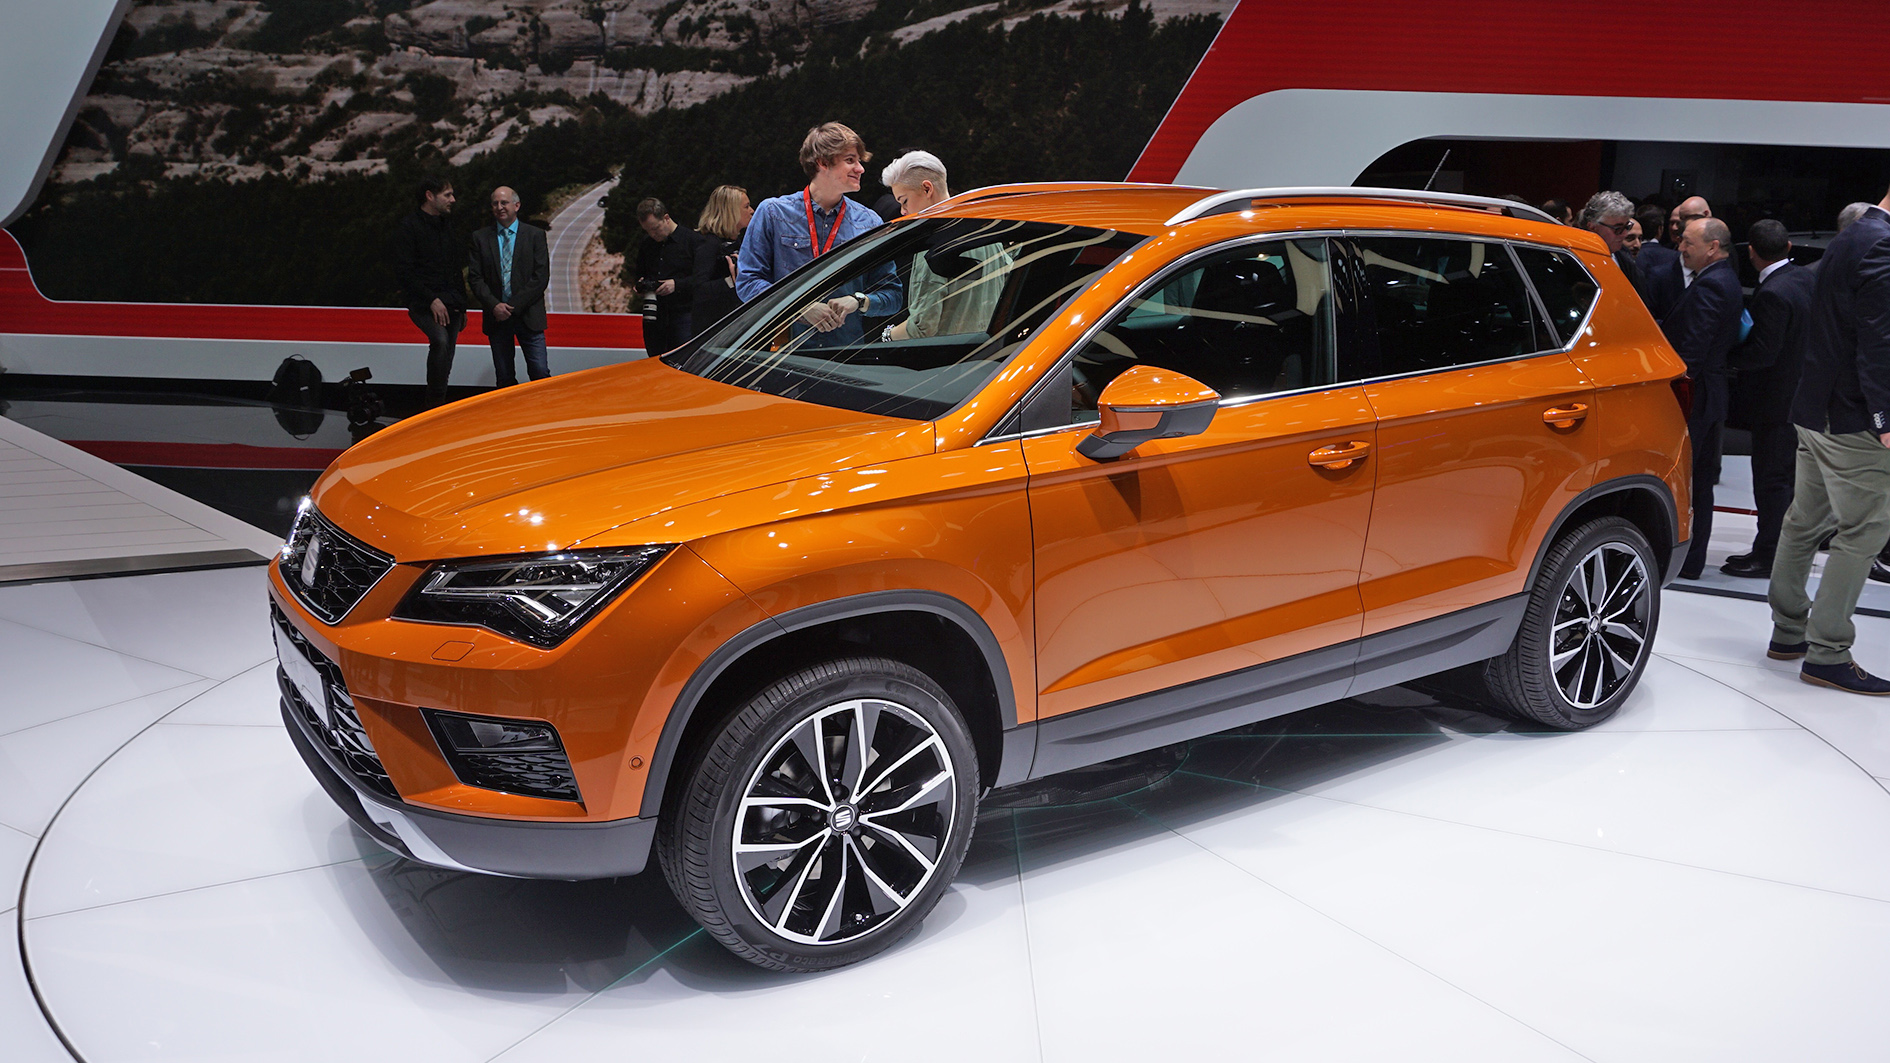 geneva 2016 seat ateca world premiere seat 39 s first suv car show world premiere car. Black Bedroom Furniture Sets. Home Design Ideas